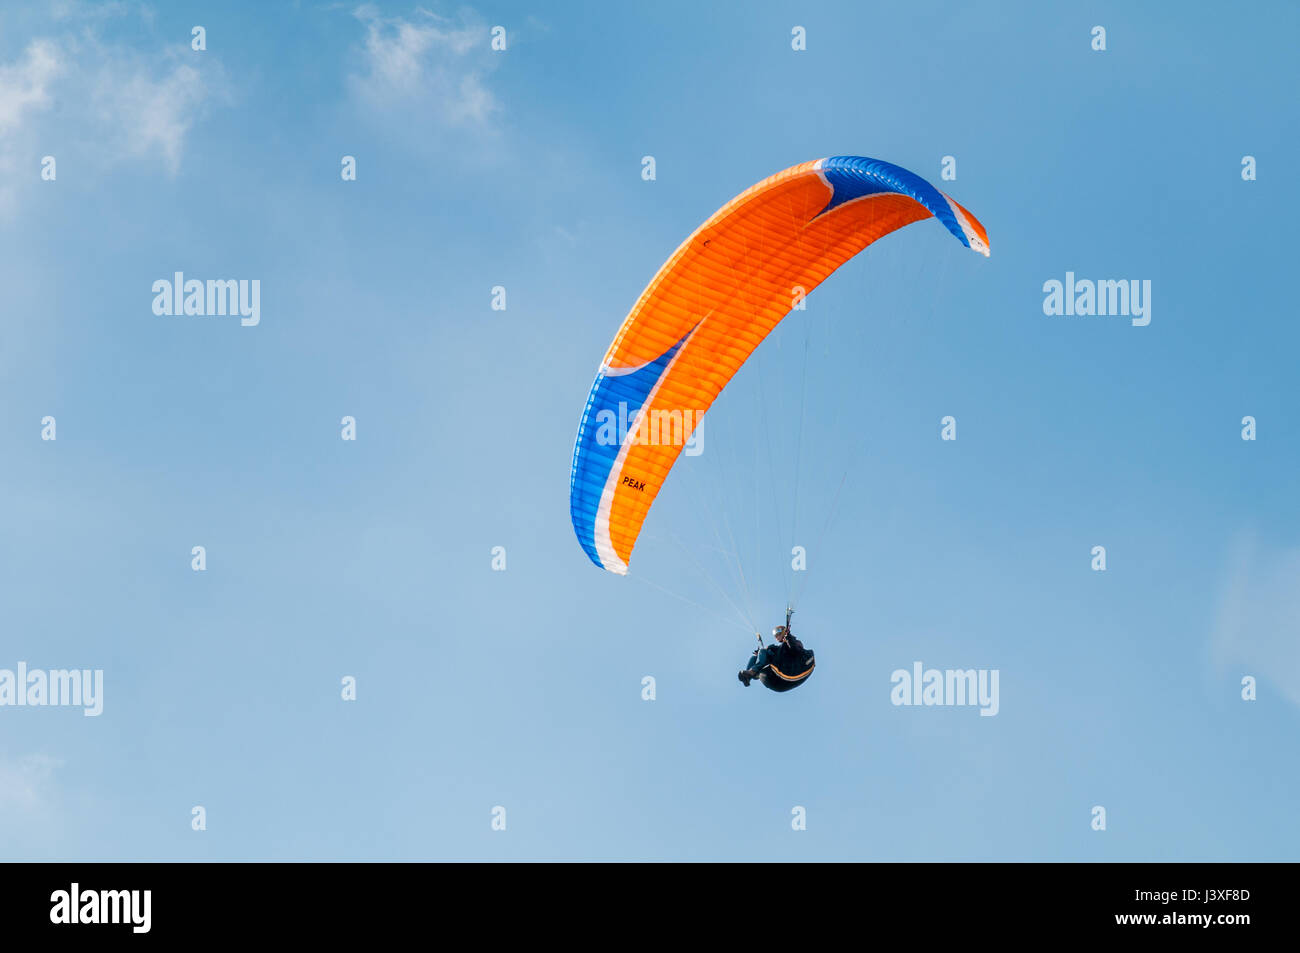 LAKE DISTRICT, UNITED KINGDOM - MAY 22, 2010: A paraglider is flying against a blue sky enjoying the wonderful day Stock Photo